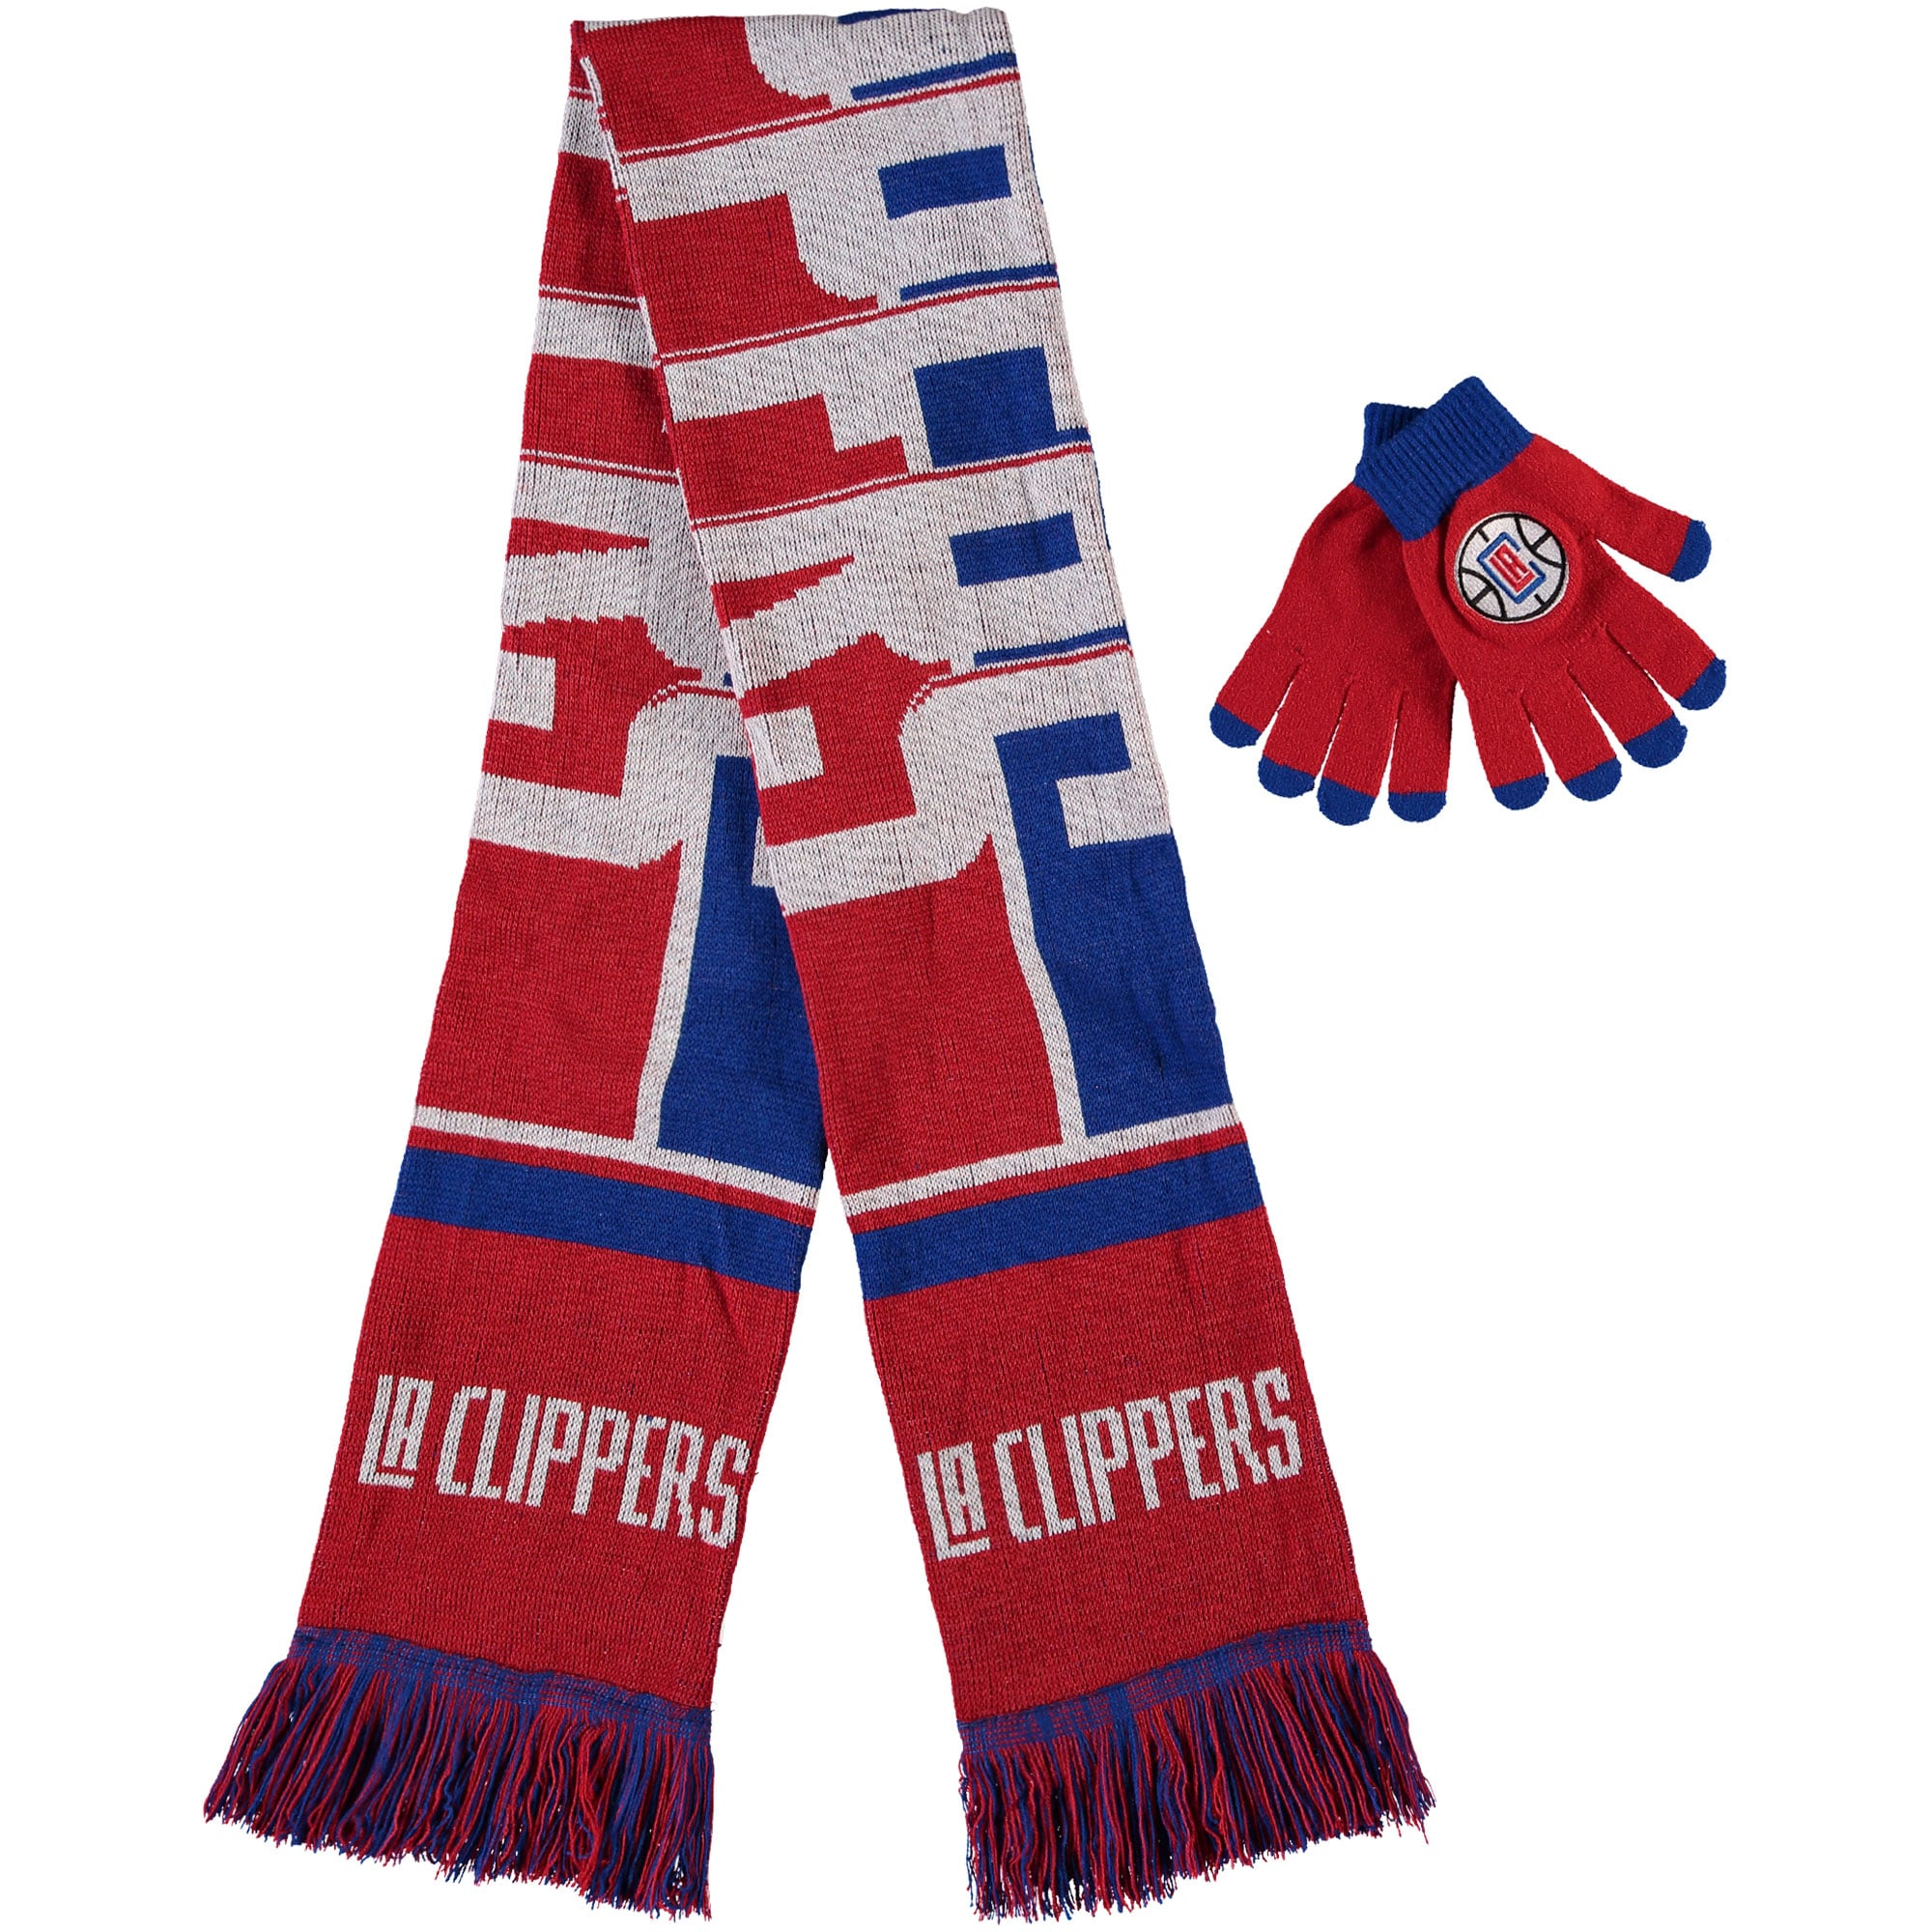 LA Clippers Hol Gloves & Scarf Set